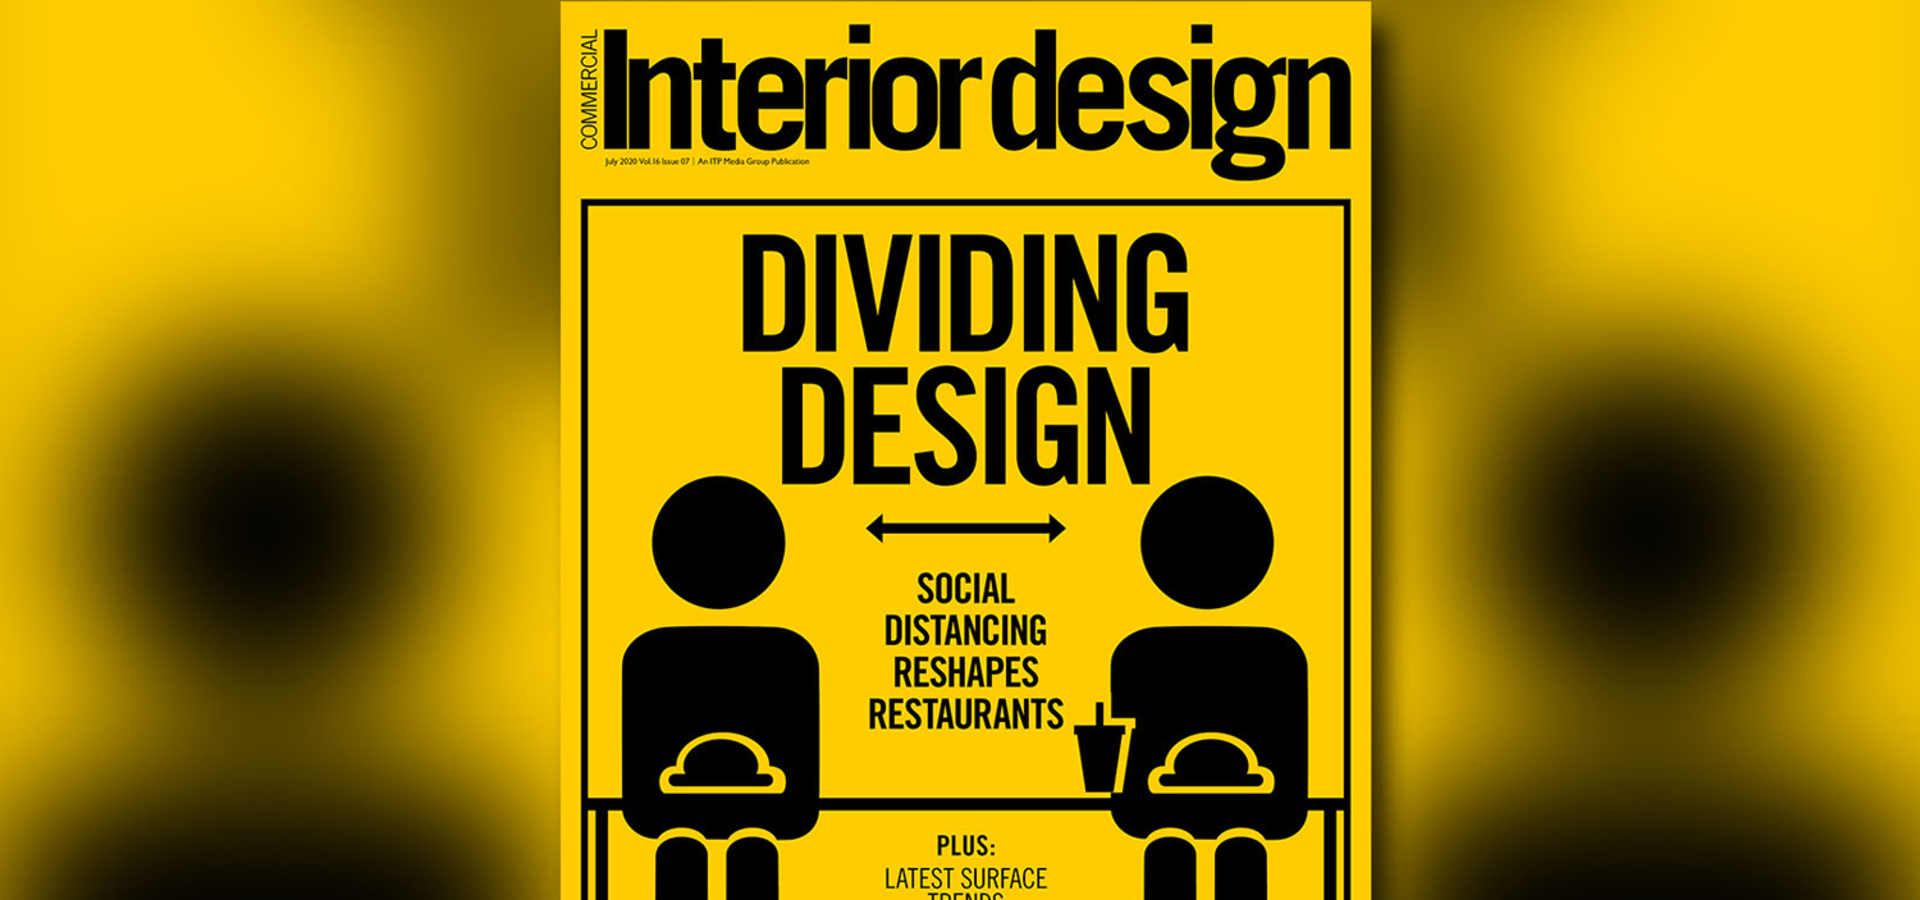 Read the July 2020 issue of Commercial Interior Design online now